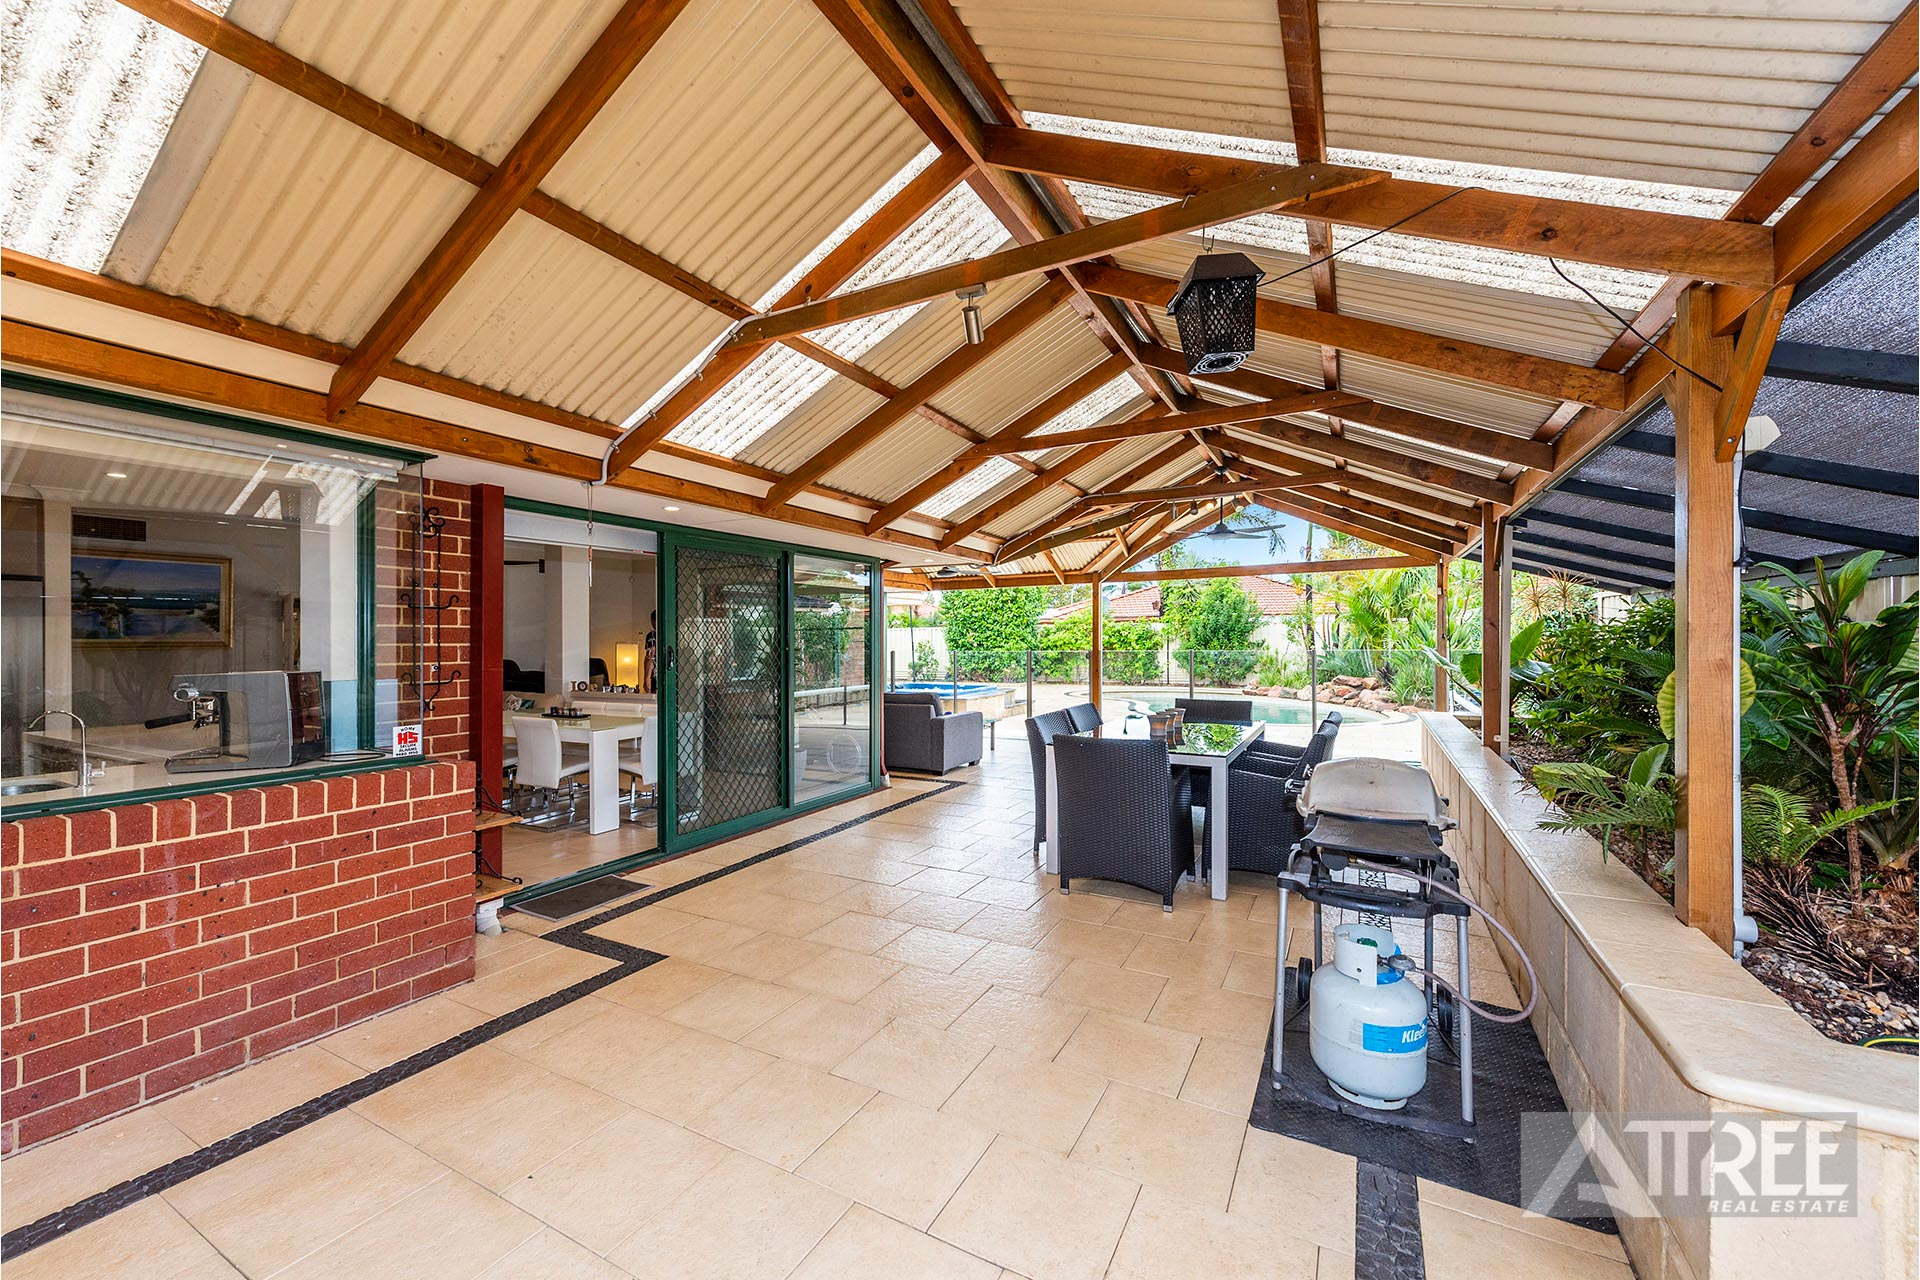 Property for sale in CANNING VALE, 10 Burtonia Place : Attree Real Estate